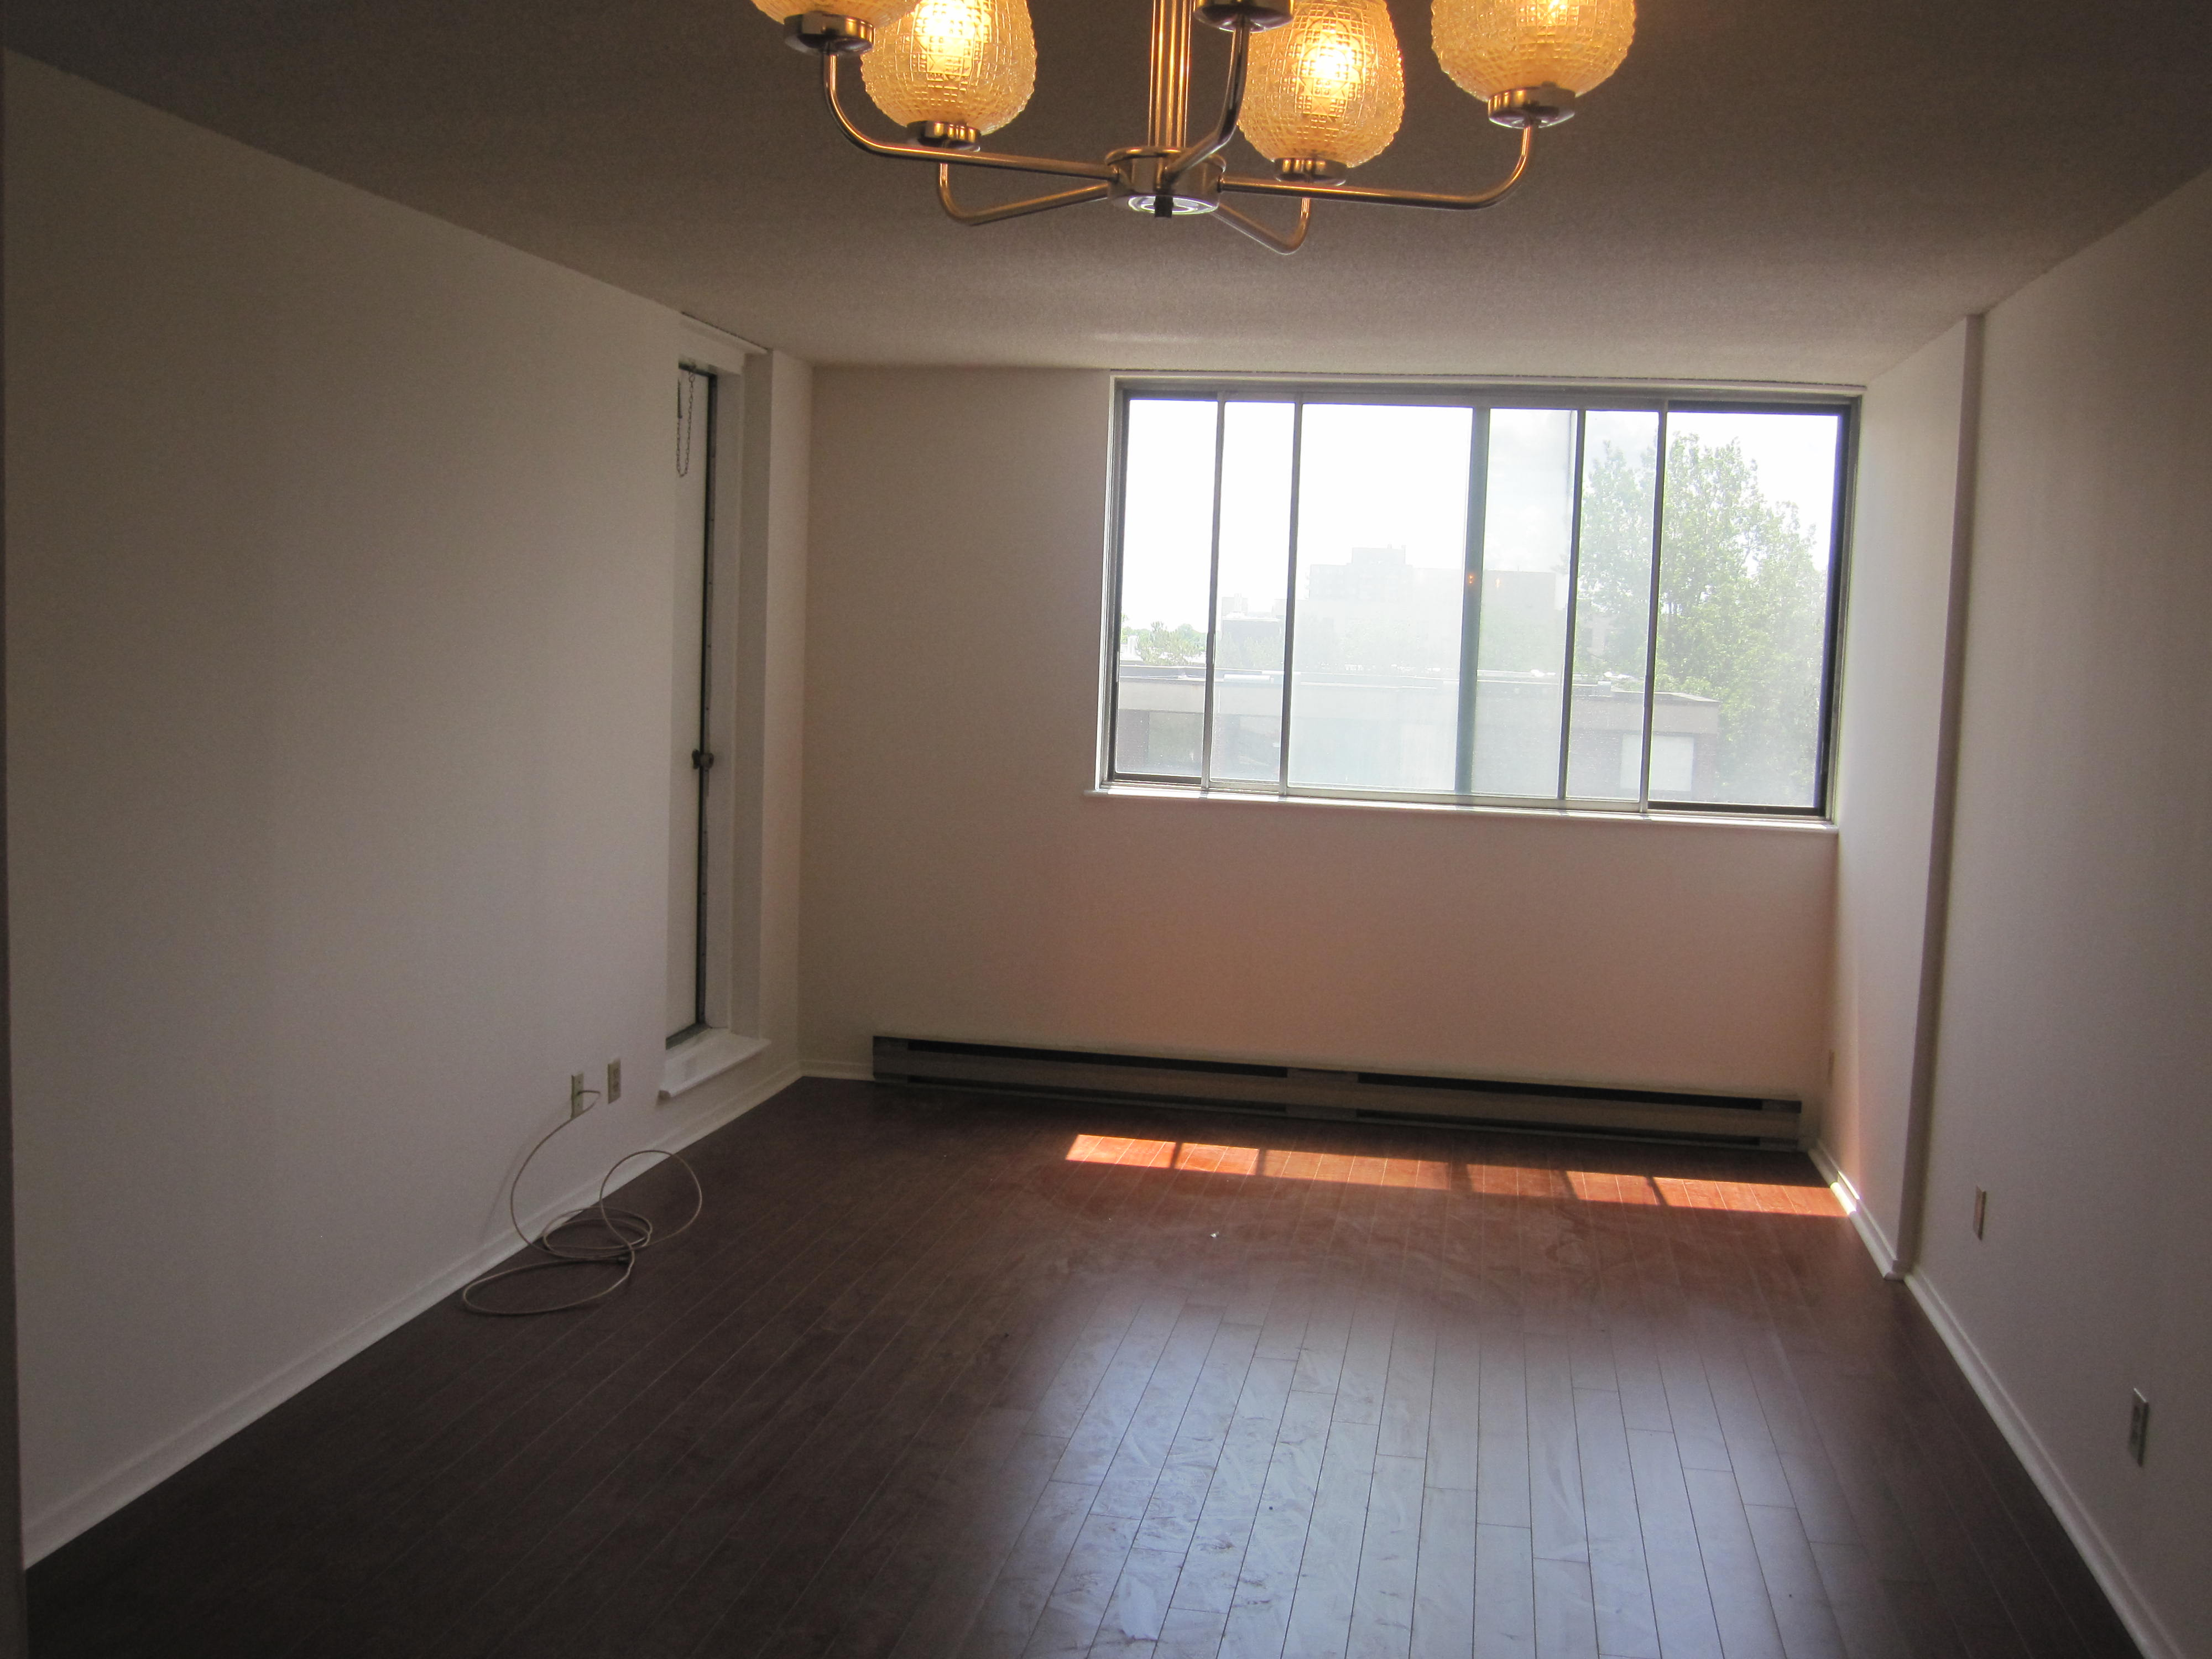 2 bedroom Apartments for rent in Cote-St-Luc at 6555 Kildare - Photo 03 - RentersPages – L19481